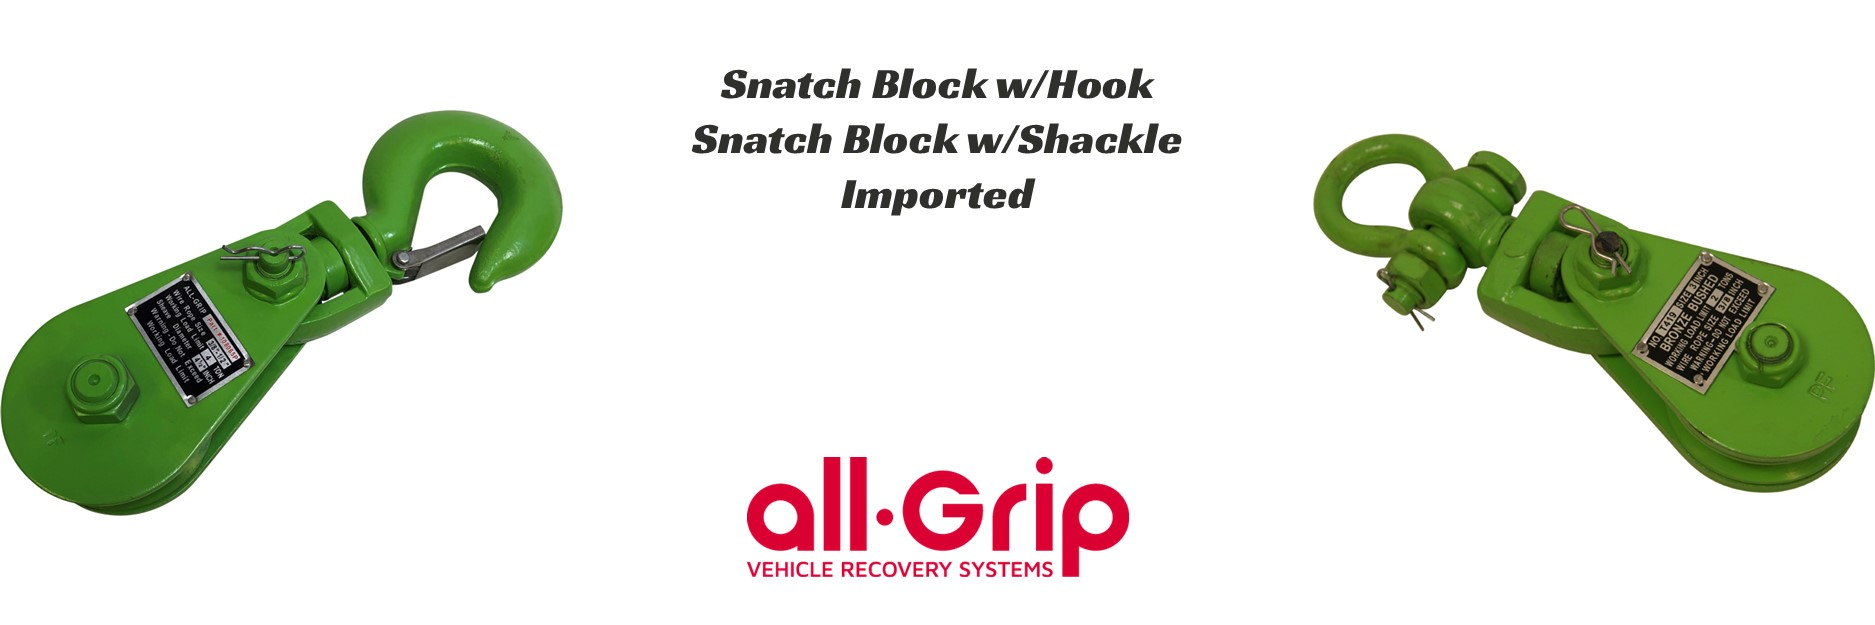 all-Grip Snatch Blocks